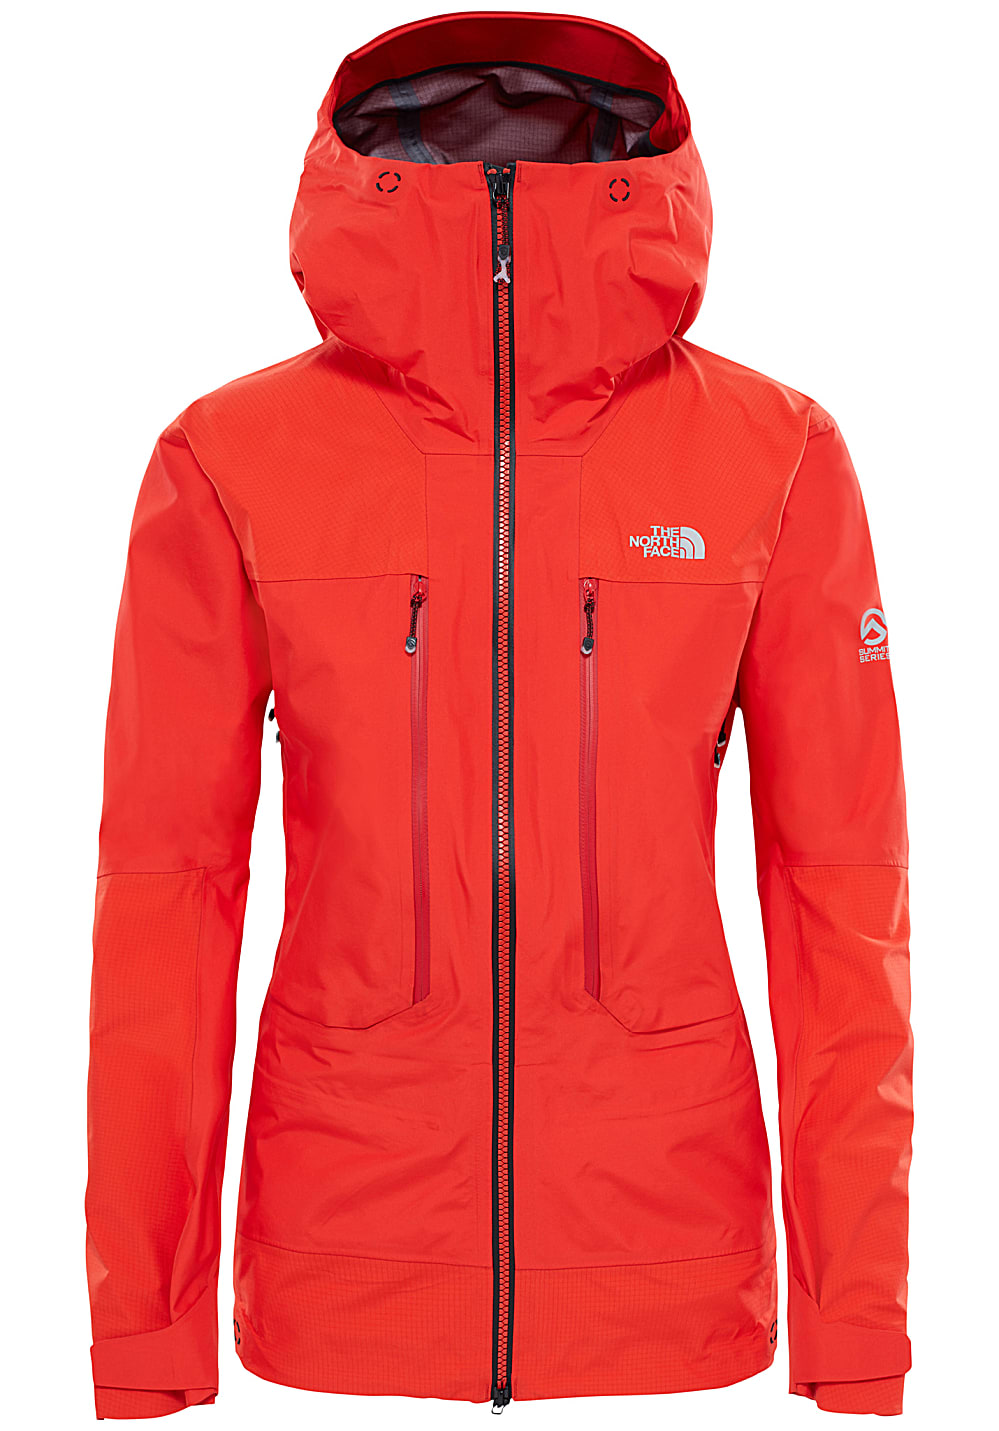 the north face jacke damen rot